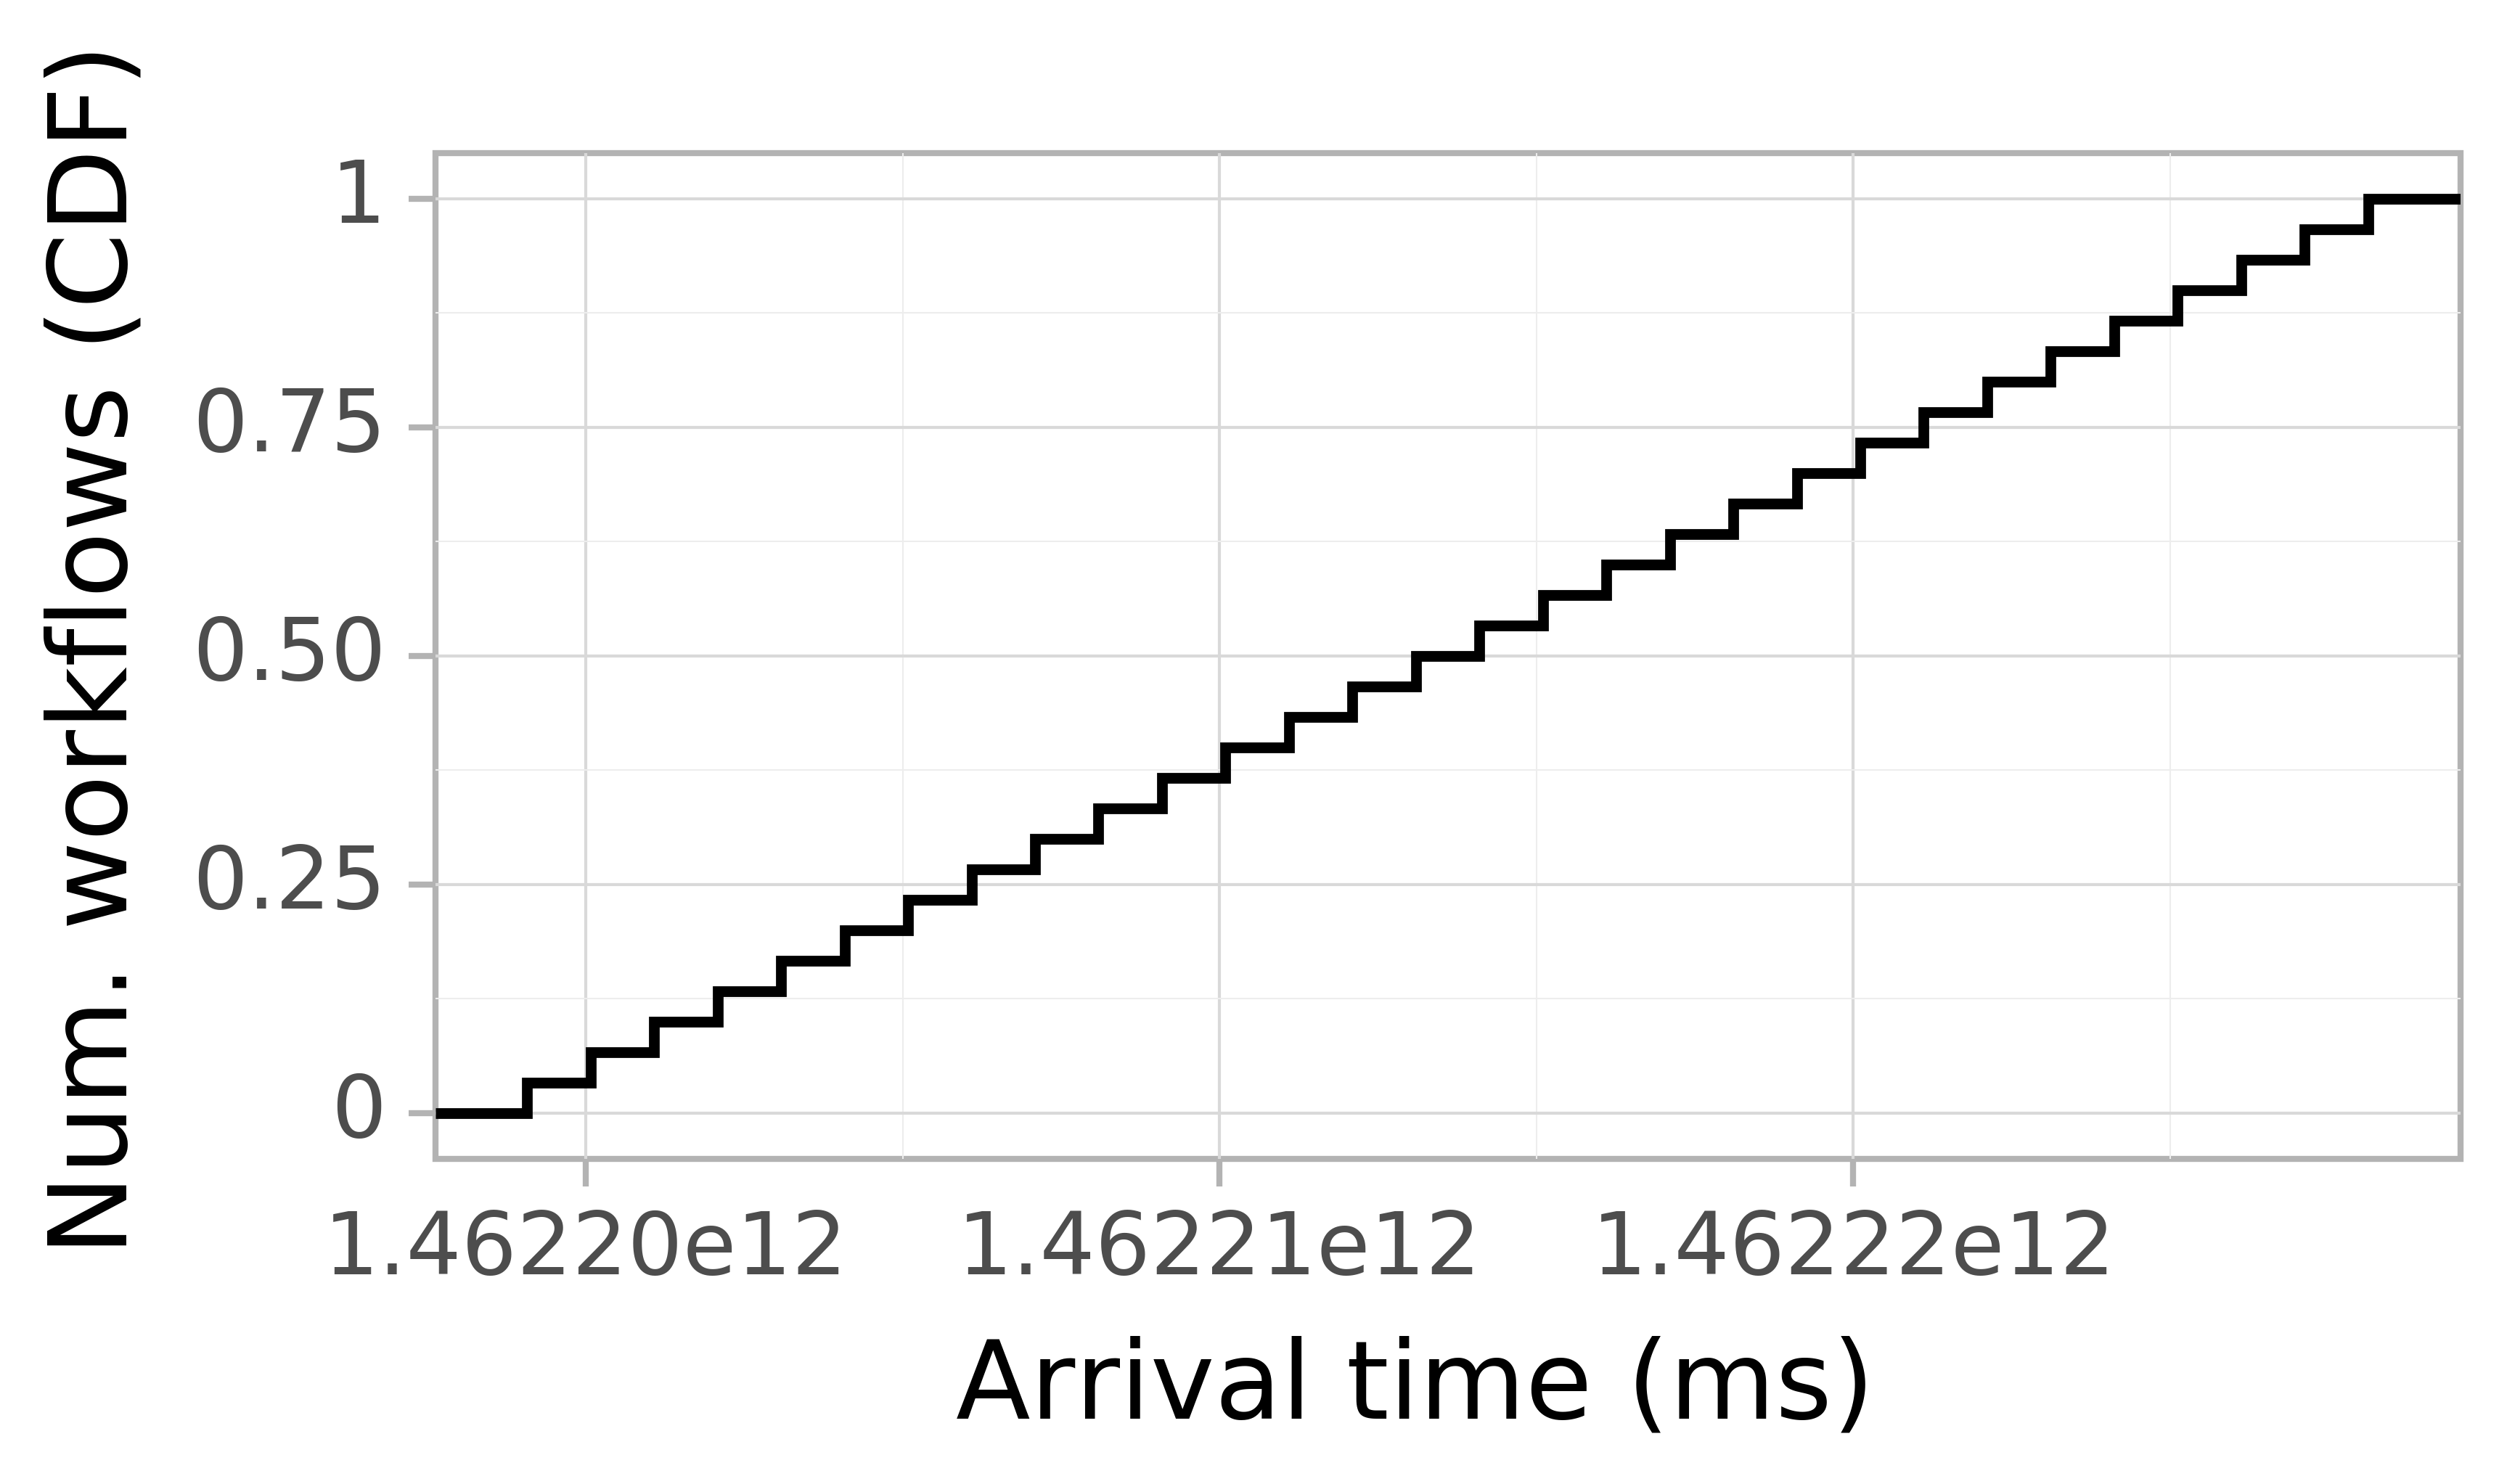 Job arrival CDF graph for the askalon-new_ee48 trace.